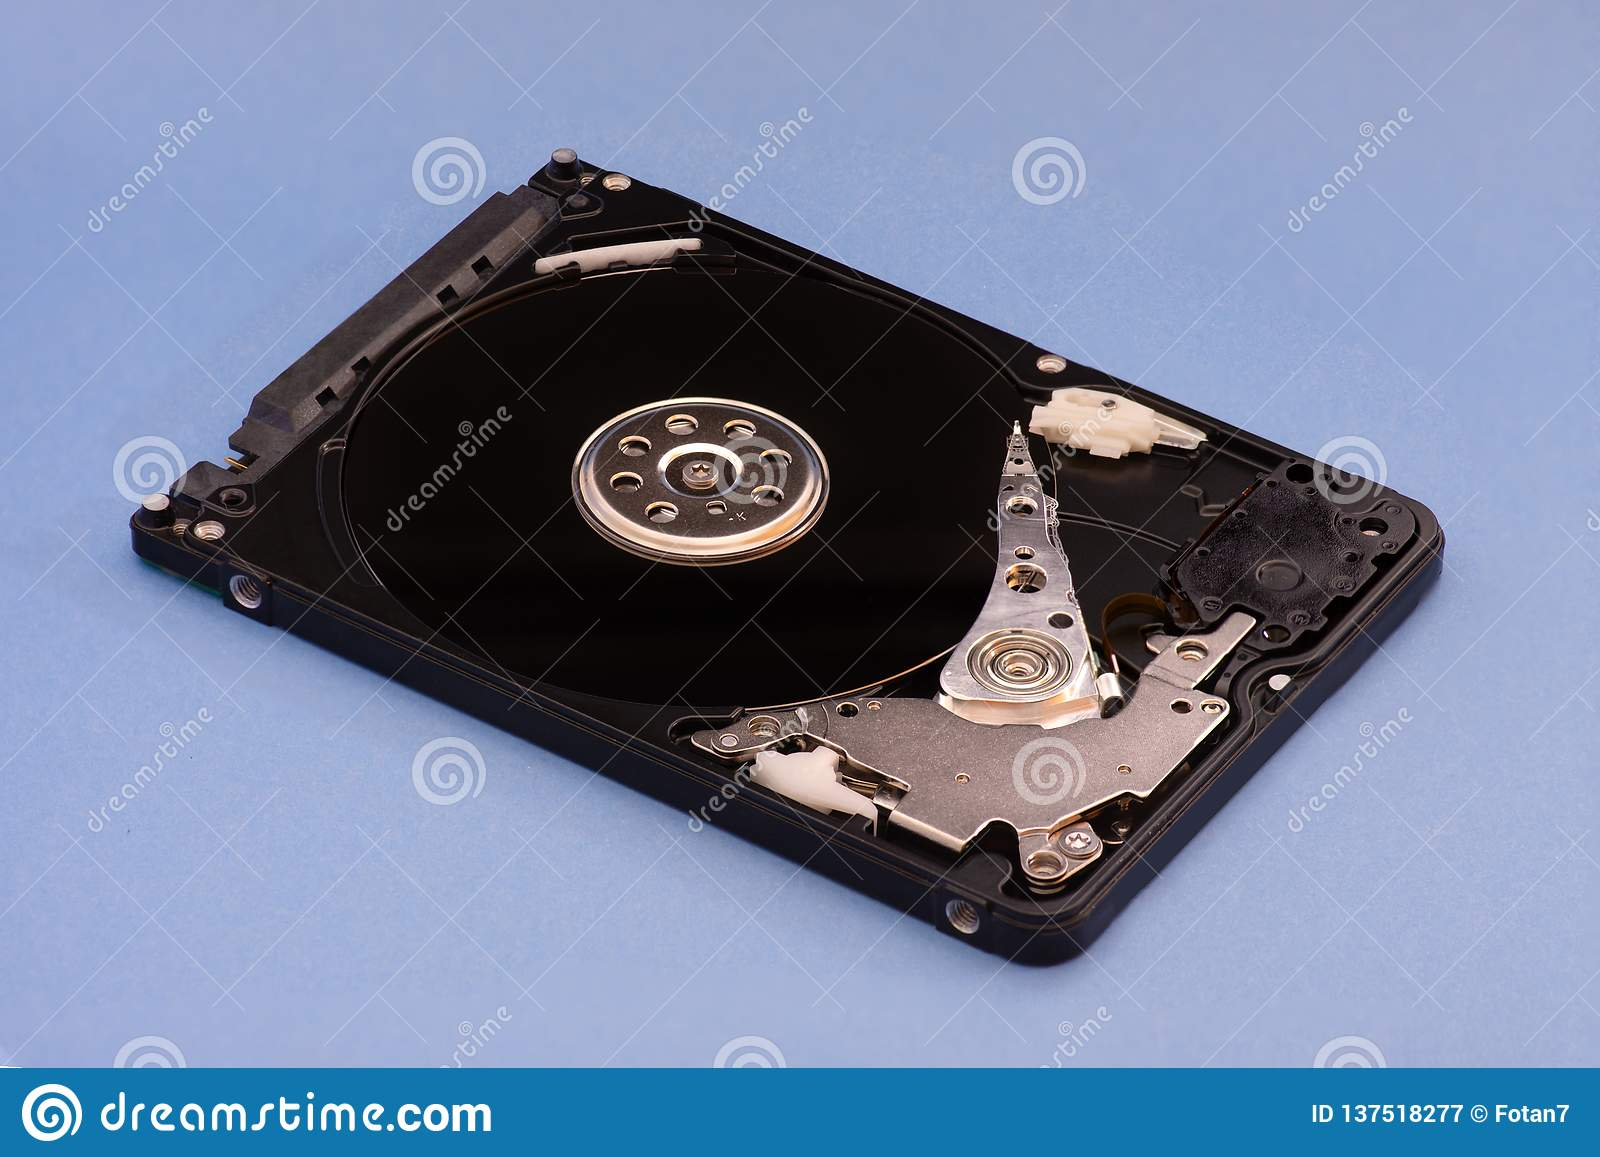 Opened disassembled hard drive from the computer, hdd with mirror effect. on blue background